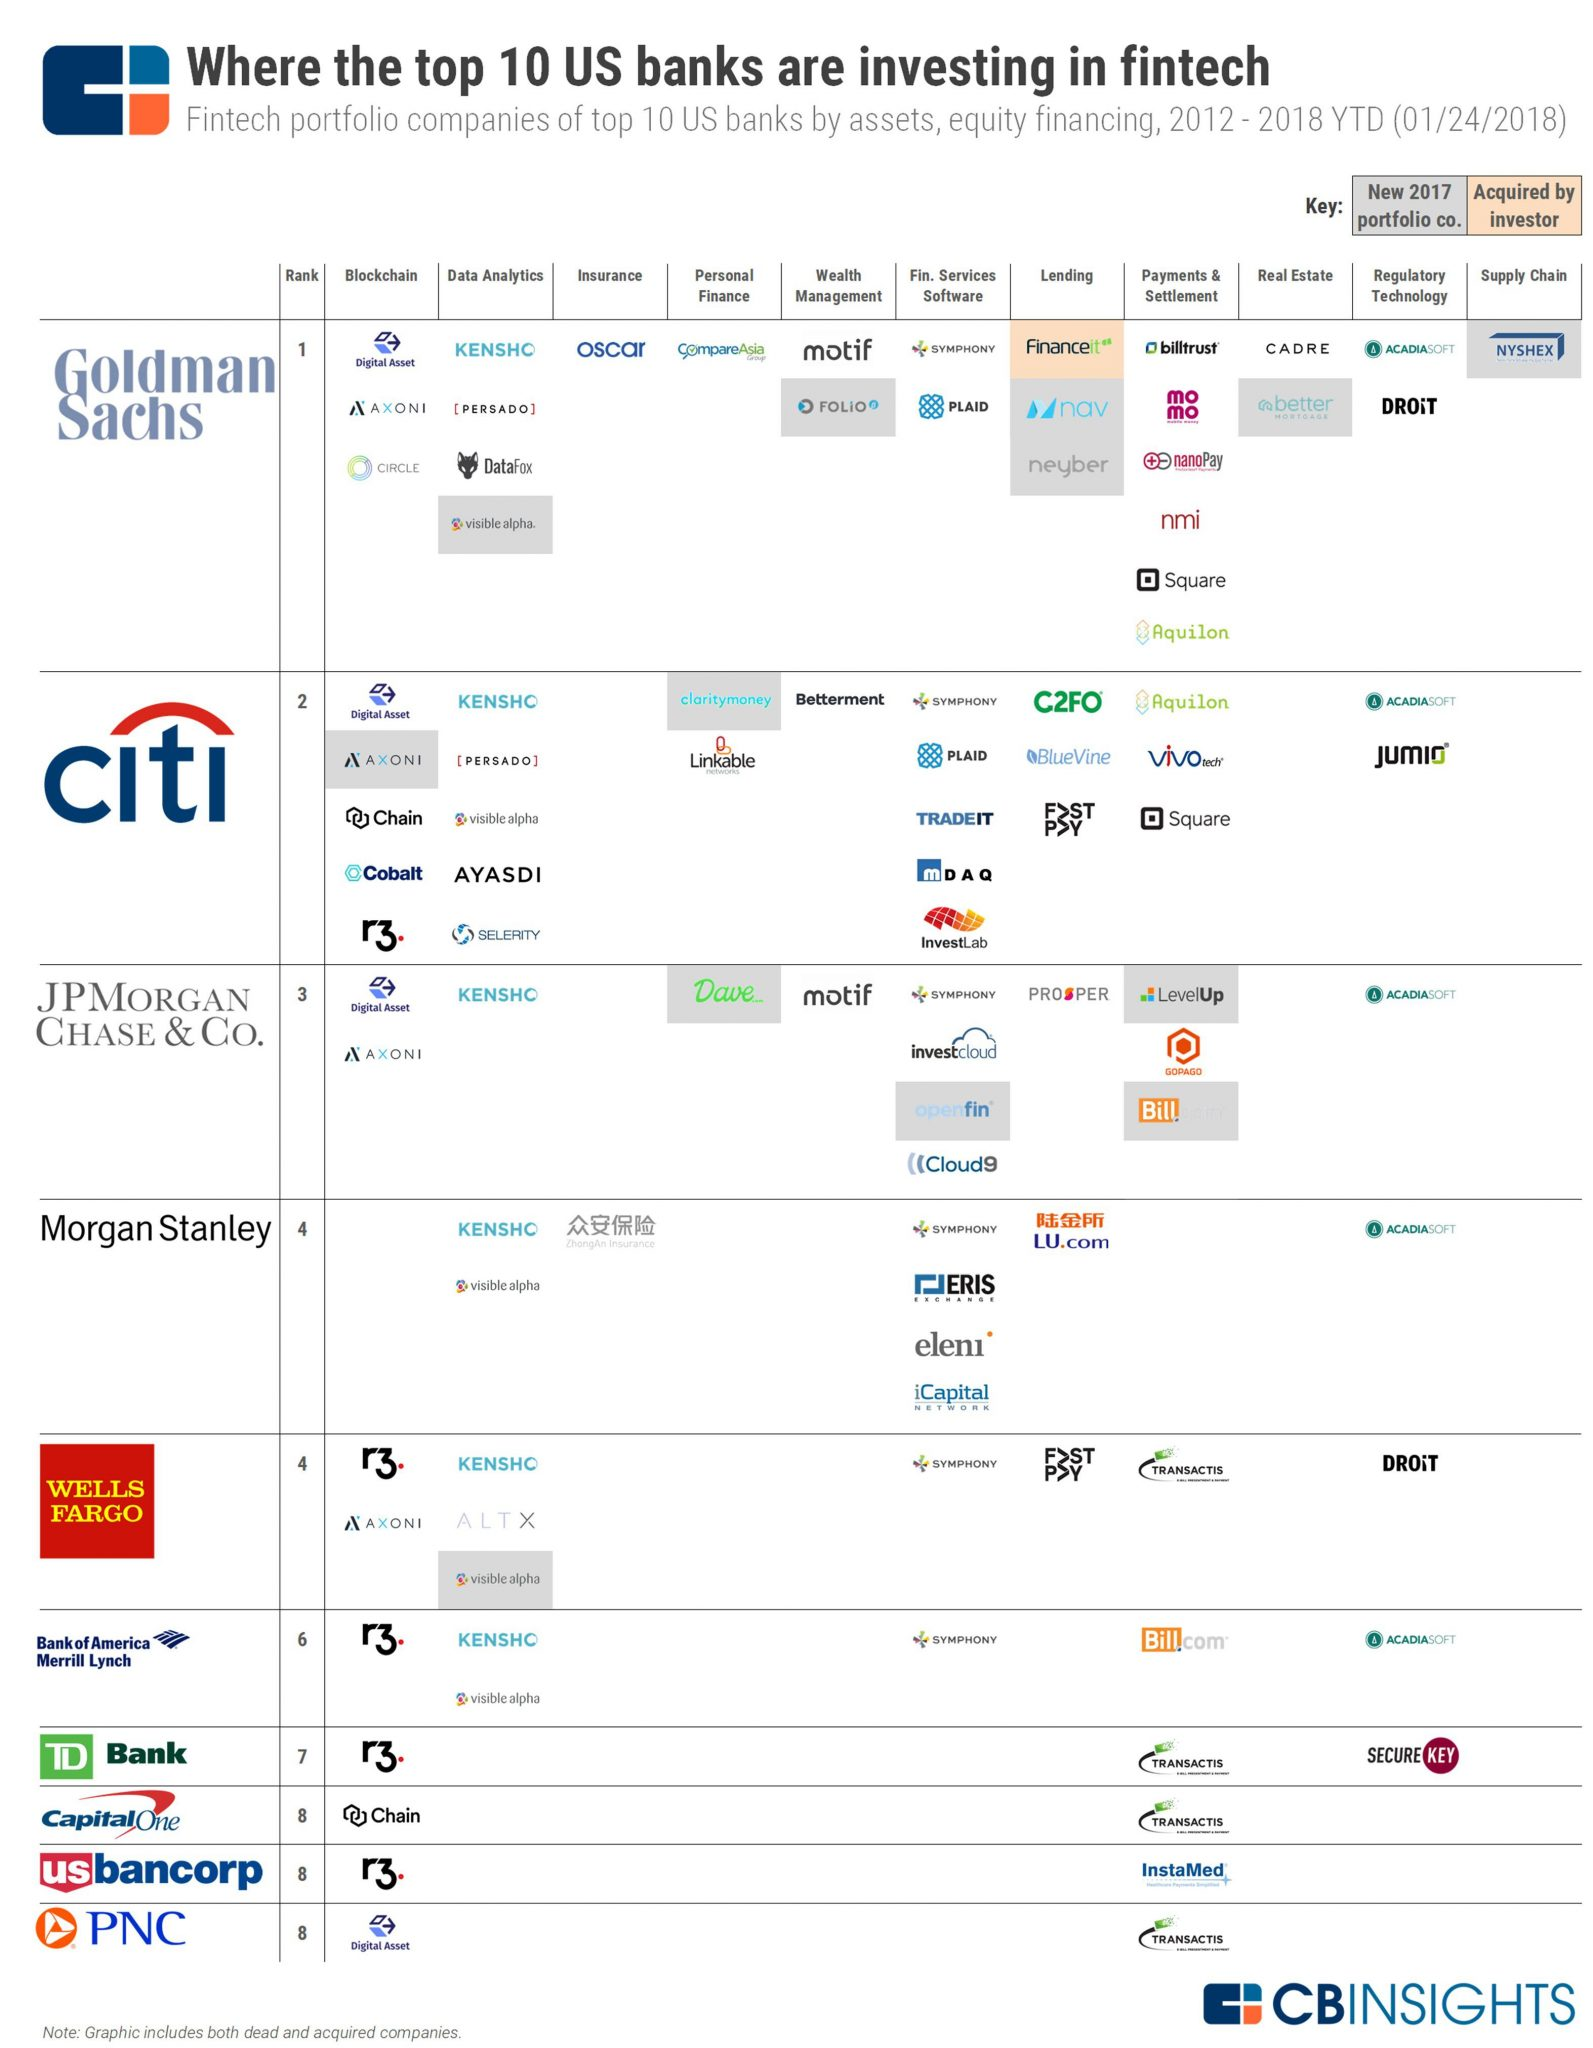 Top US banks fintech investment